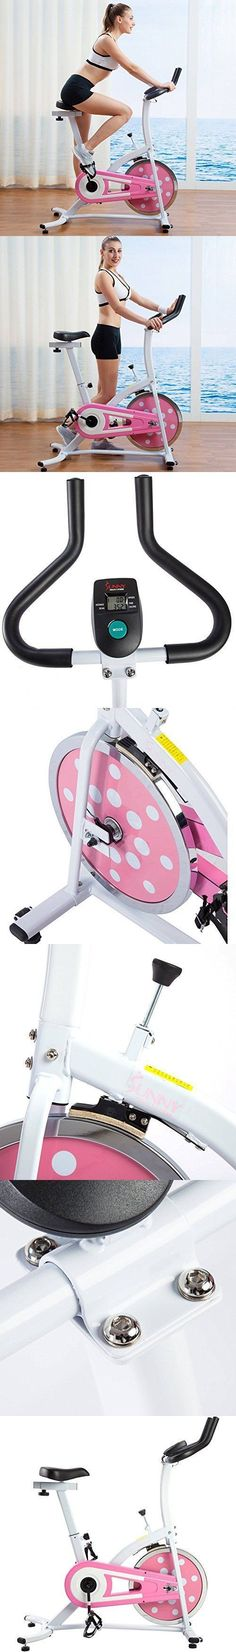 Health and Fitness Bicycle Pink Indoor Cycling Stationary Upright Exercise Bike Cardio Workout Training Home Gym Equipment Adjustable Seat Height Chain Drive Mechanism Heavy Duty Crank and Steel Frame #cardiobikingworkout #indoorcycling #indoorbikingworkout